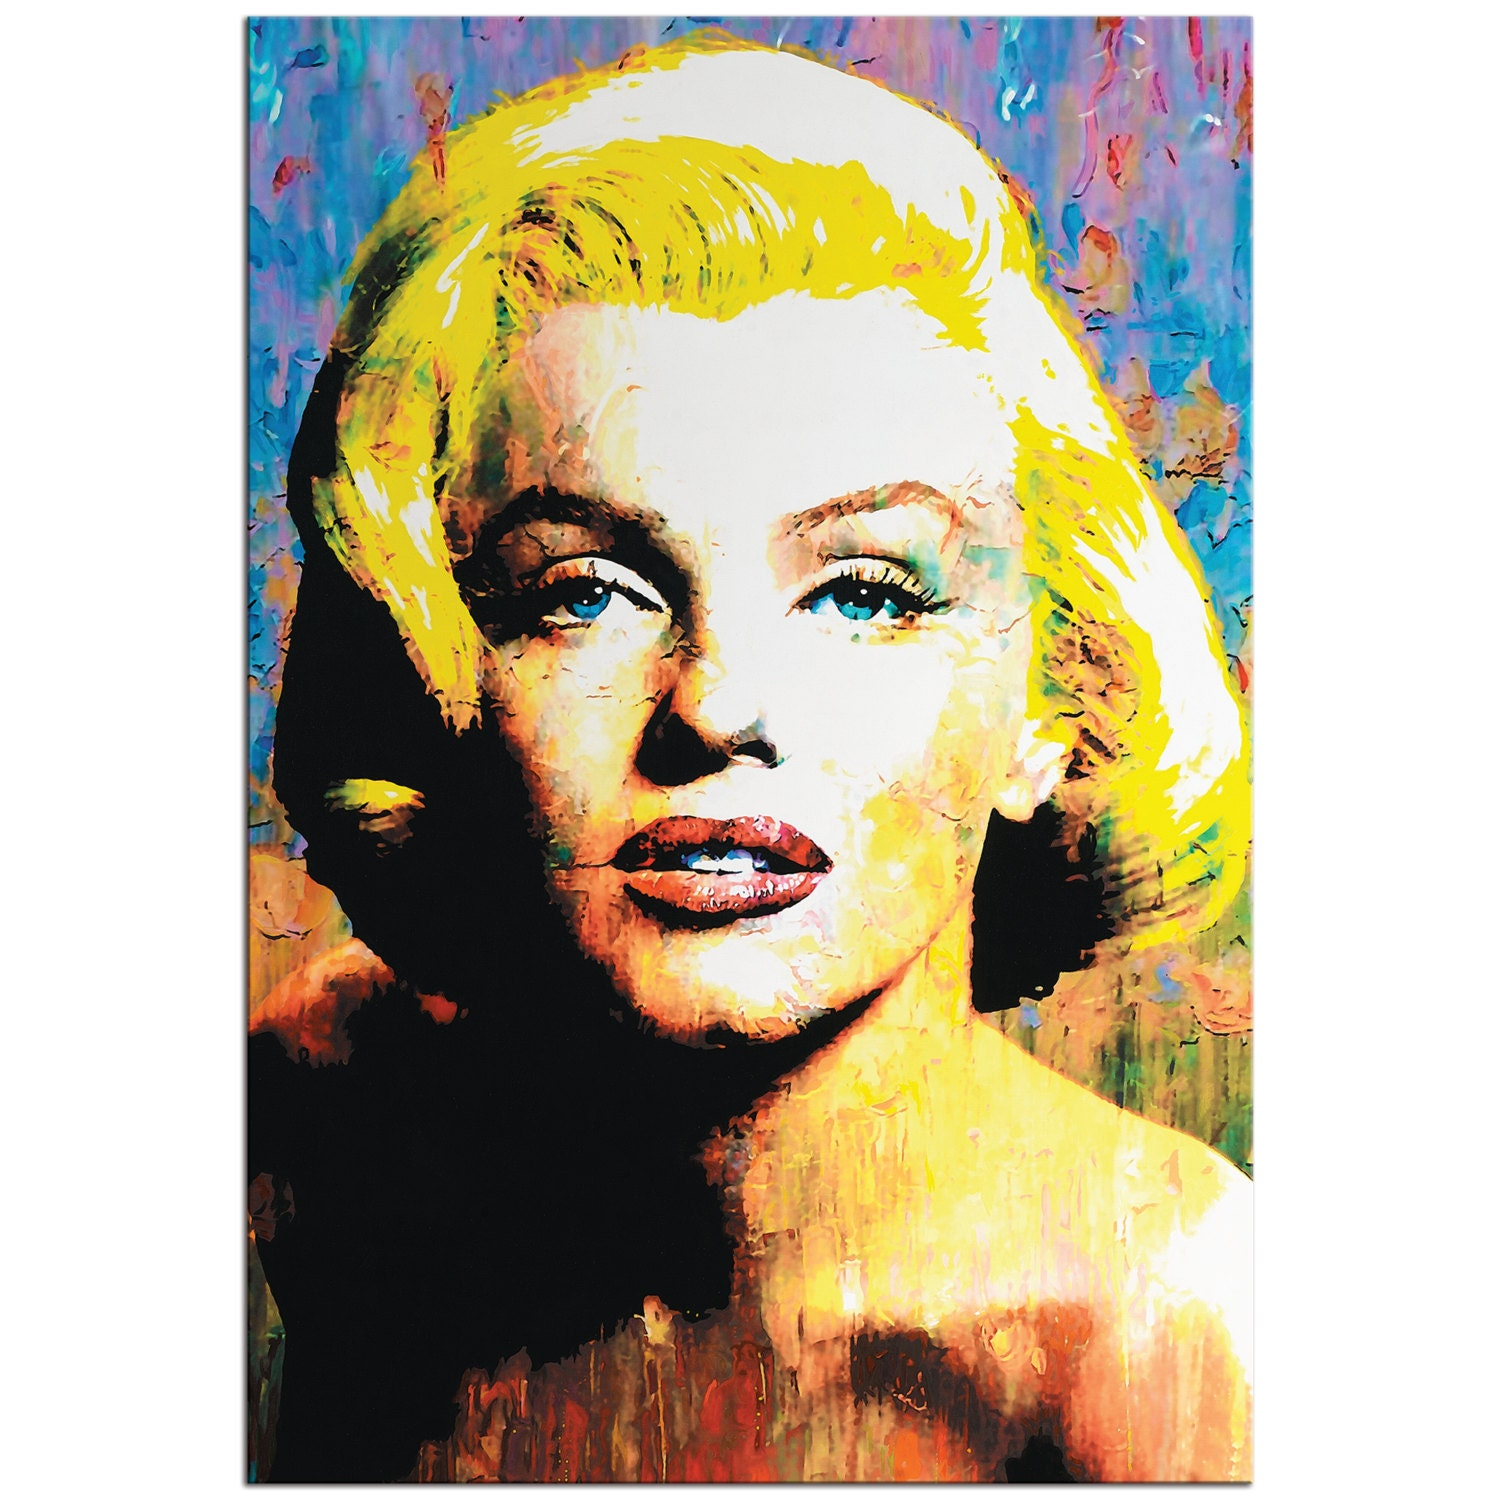 Pop Art \'Marilyn Monroe\' Pop Culture Icon Painting